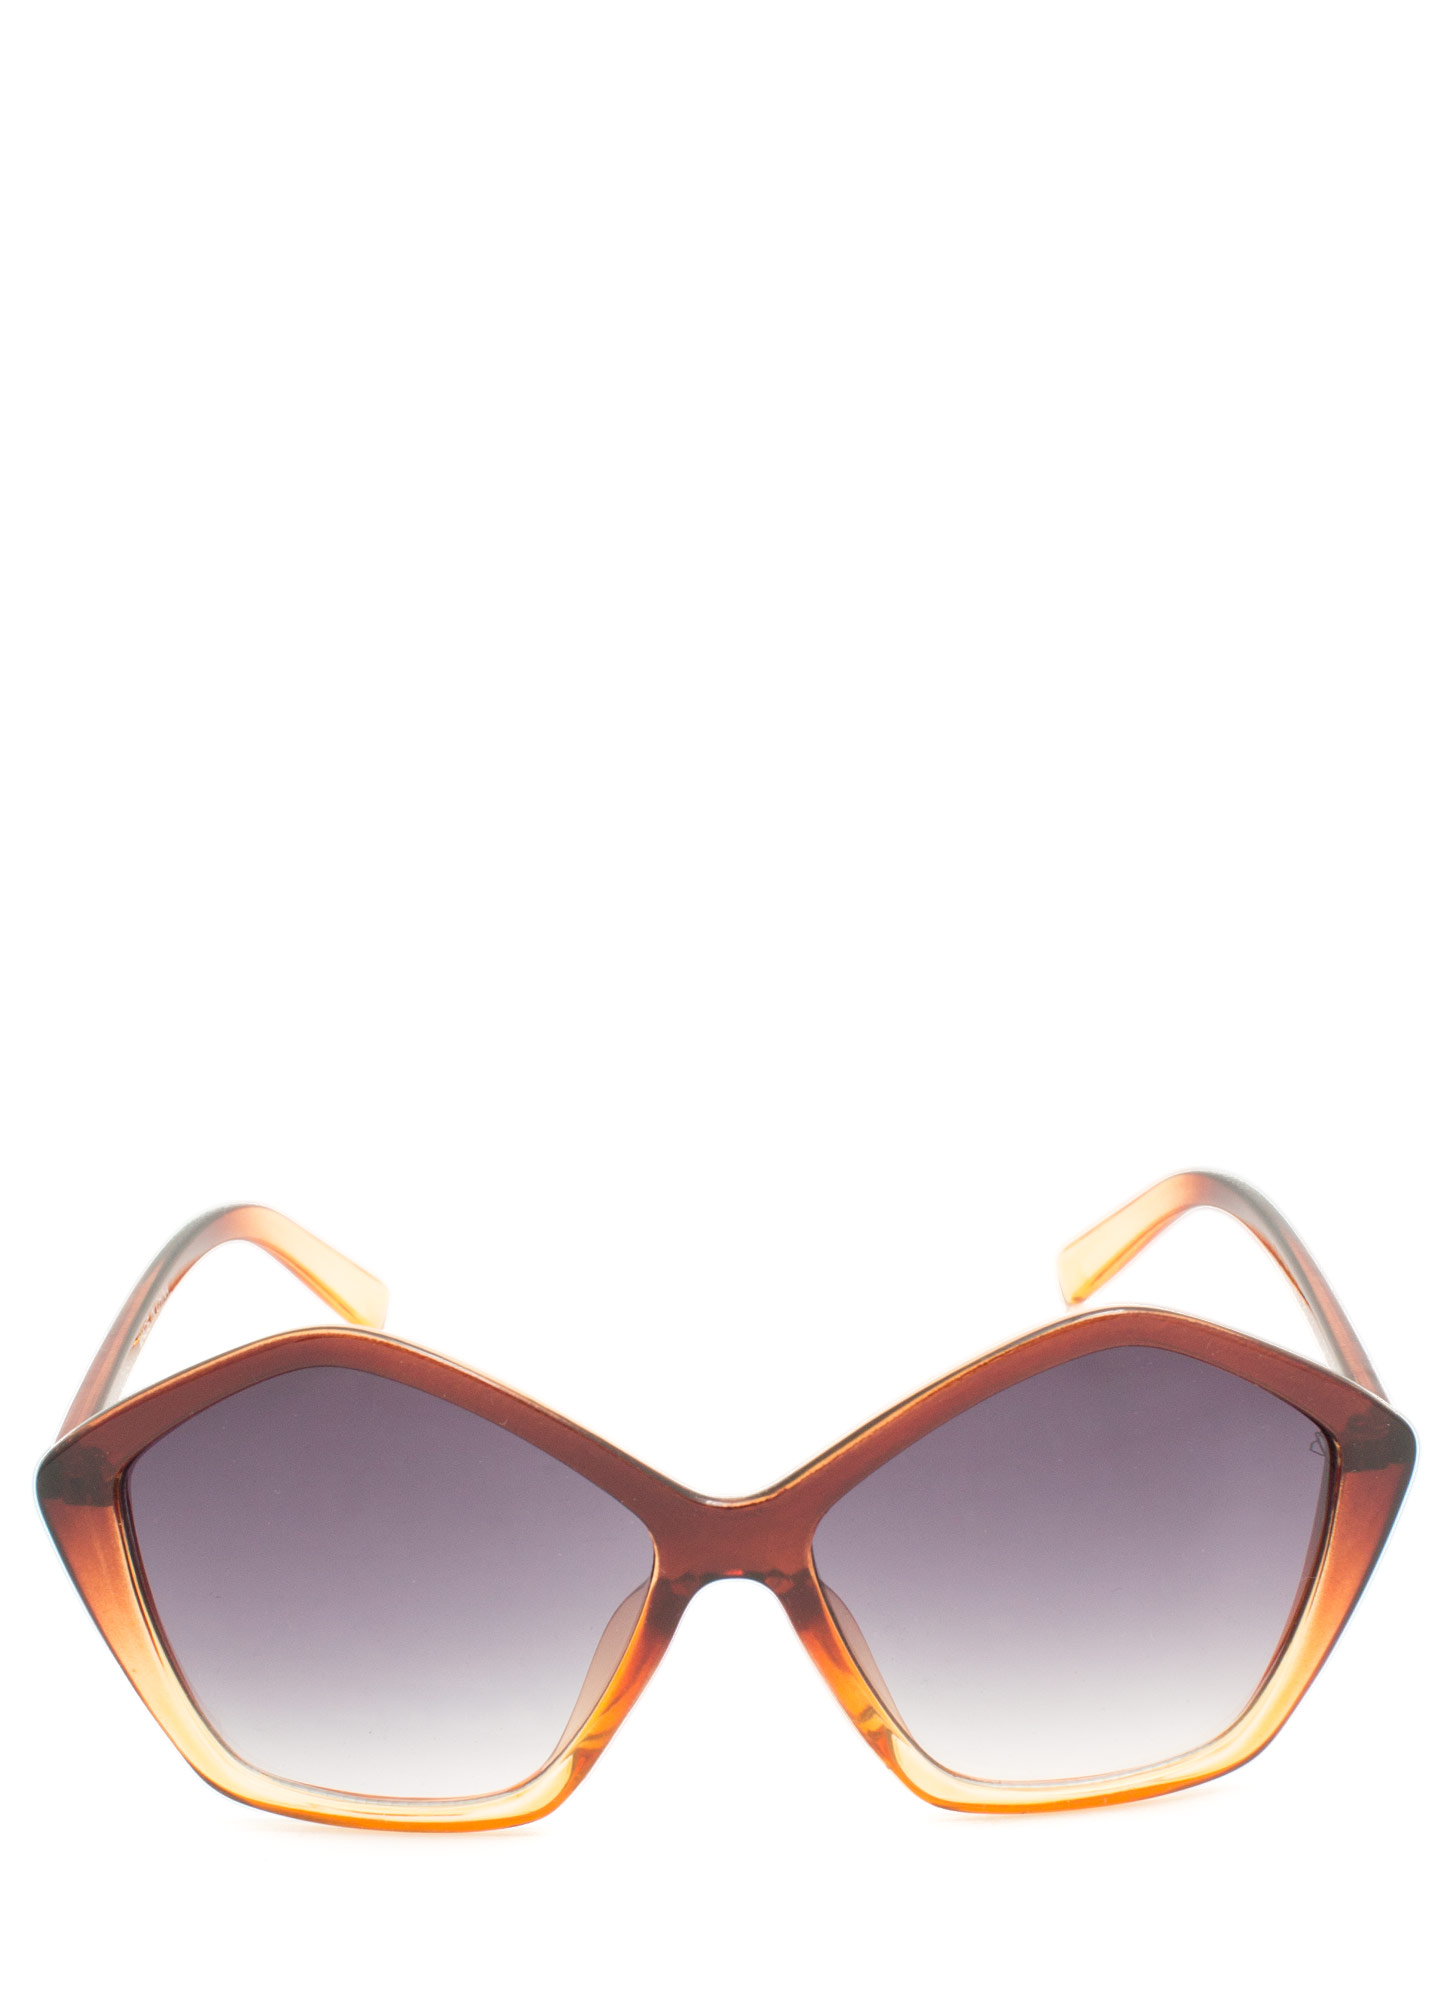 Pentagon Resin Sunglasses BROWNCLEAR